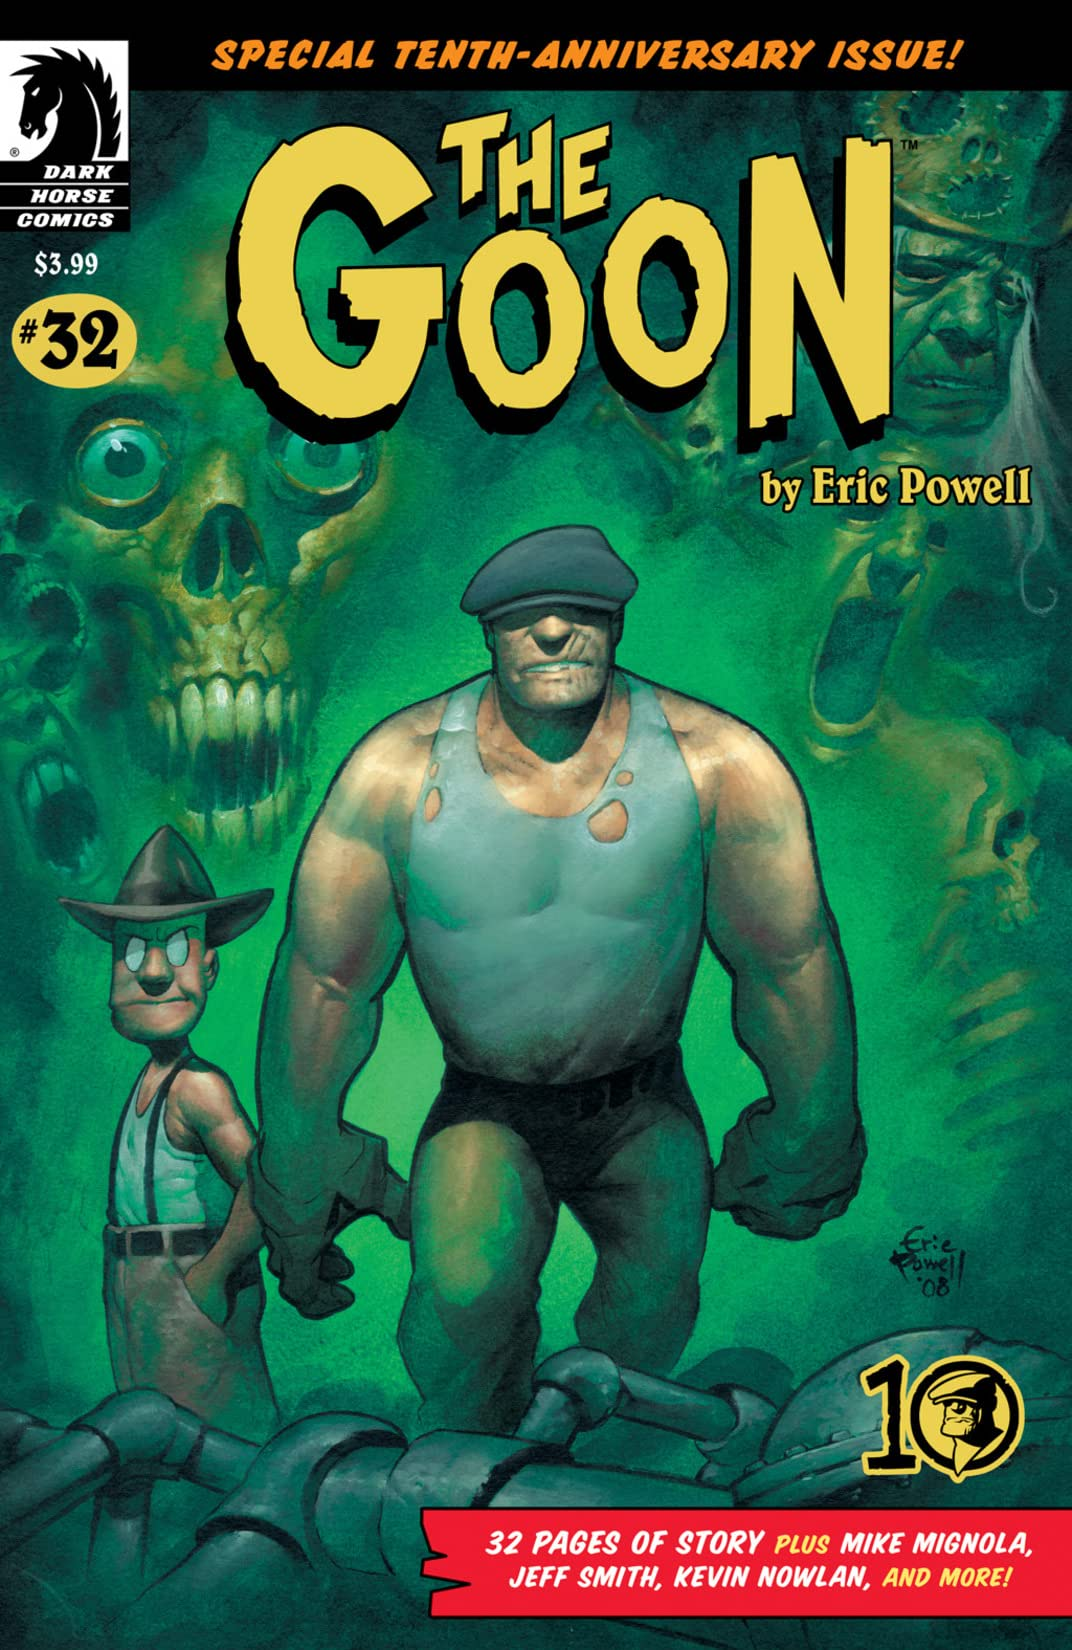 The Goon #32: Anniversary Issue